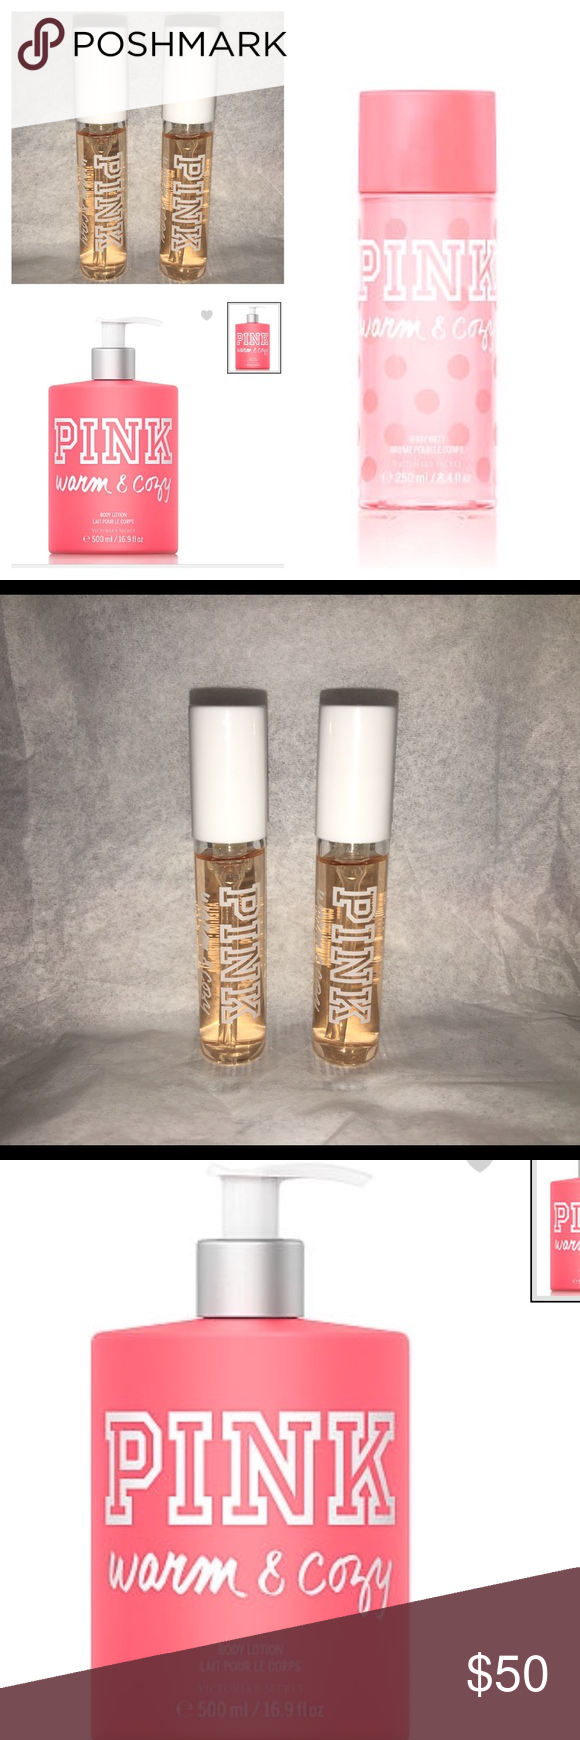 VS PINK Warm & Cozy Mist Lotion 2 travel EDT's NEW Victoria's Secret PINK --- Warm & Cozy 4 piece gift set - full and travel size  - 8.4 oz Body fragrance mist - 16.9 oz large body lotion with pump - 2 travel Eau De Toilette sprays 0.9 oz each  New and never used Smoke free home This closet does not trade PINK Victoria's Secret Makeup